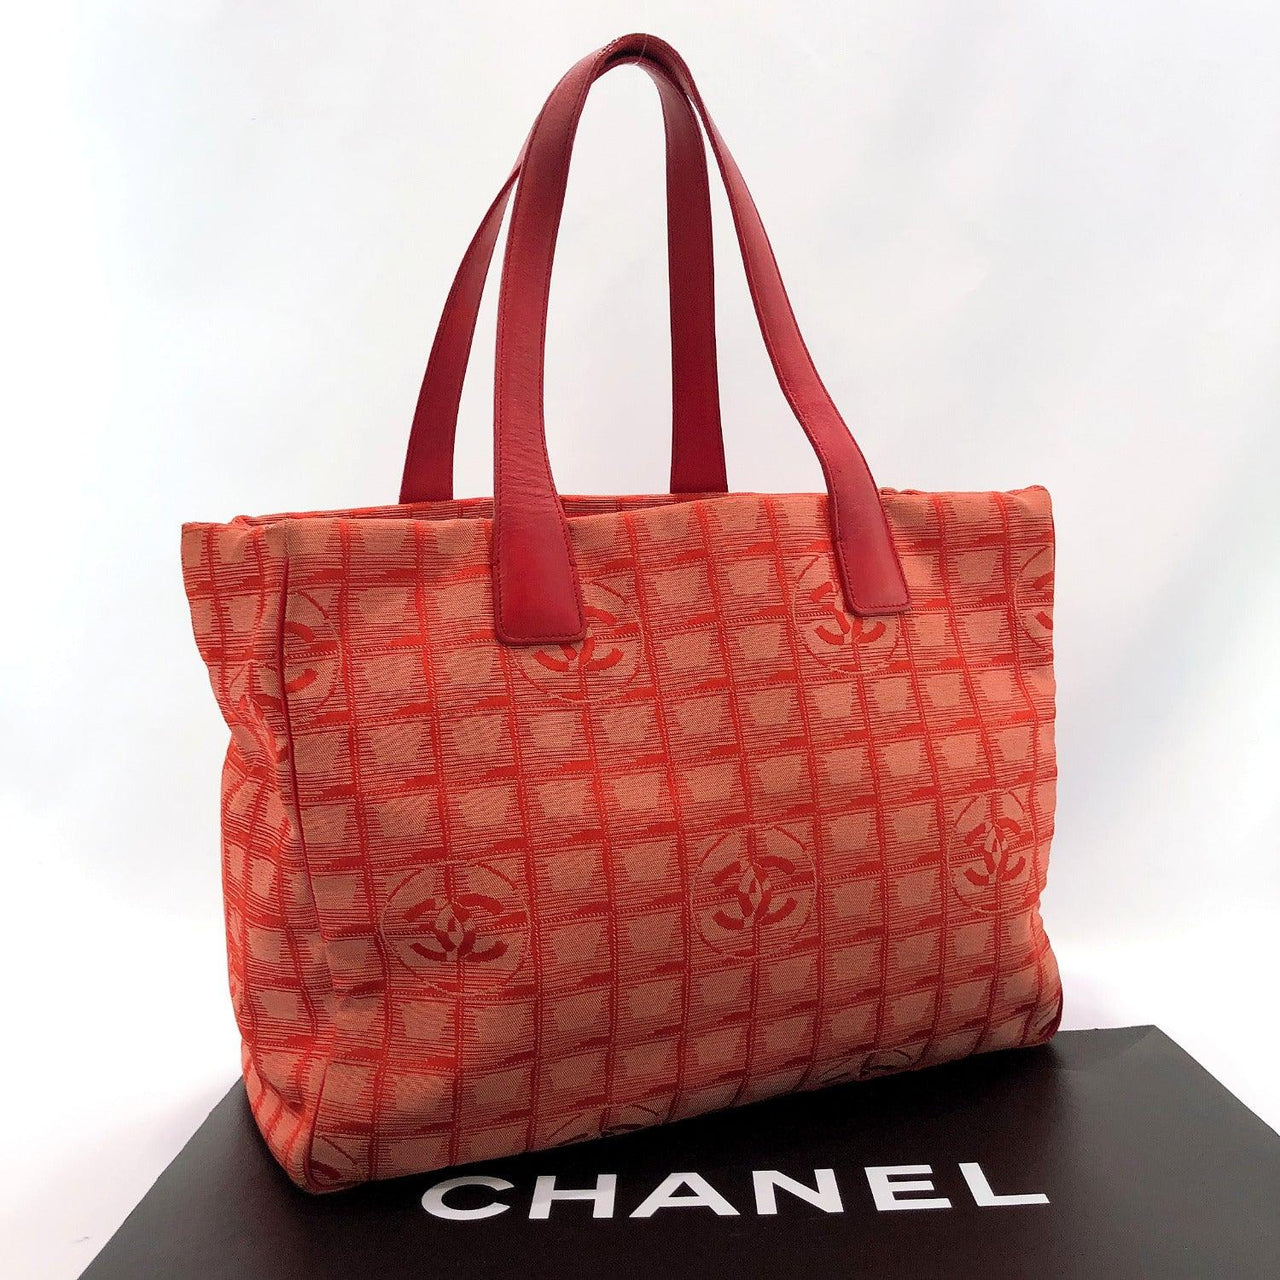 CHANEL Tote Bag New Travel Line MM Nylon Red Women Used